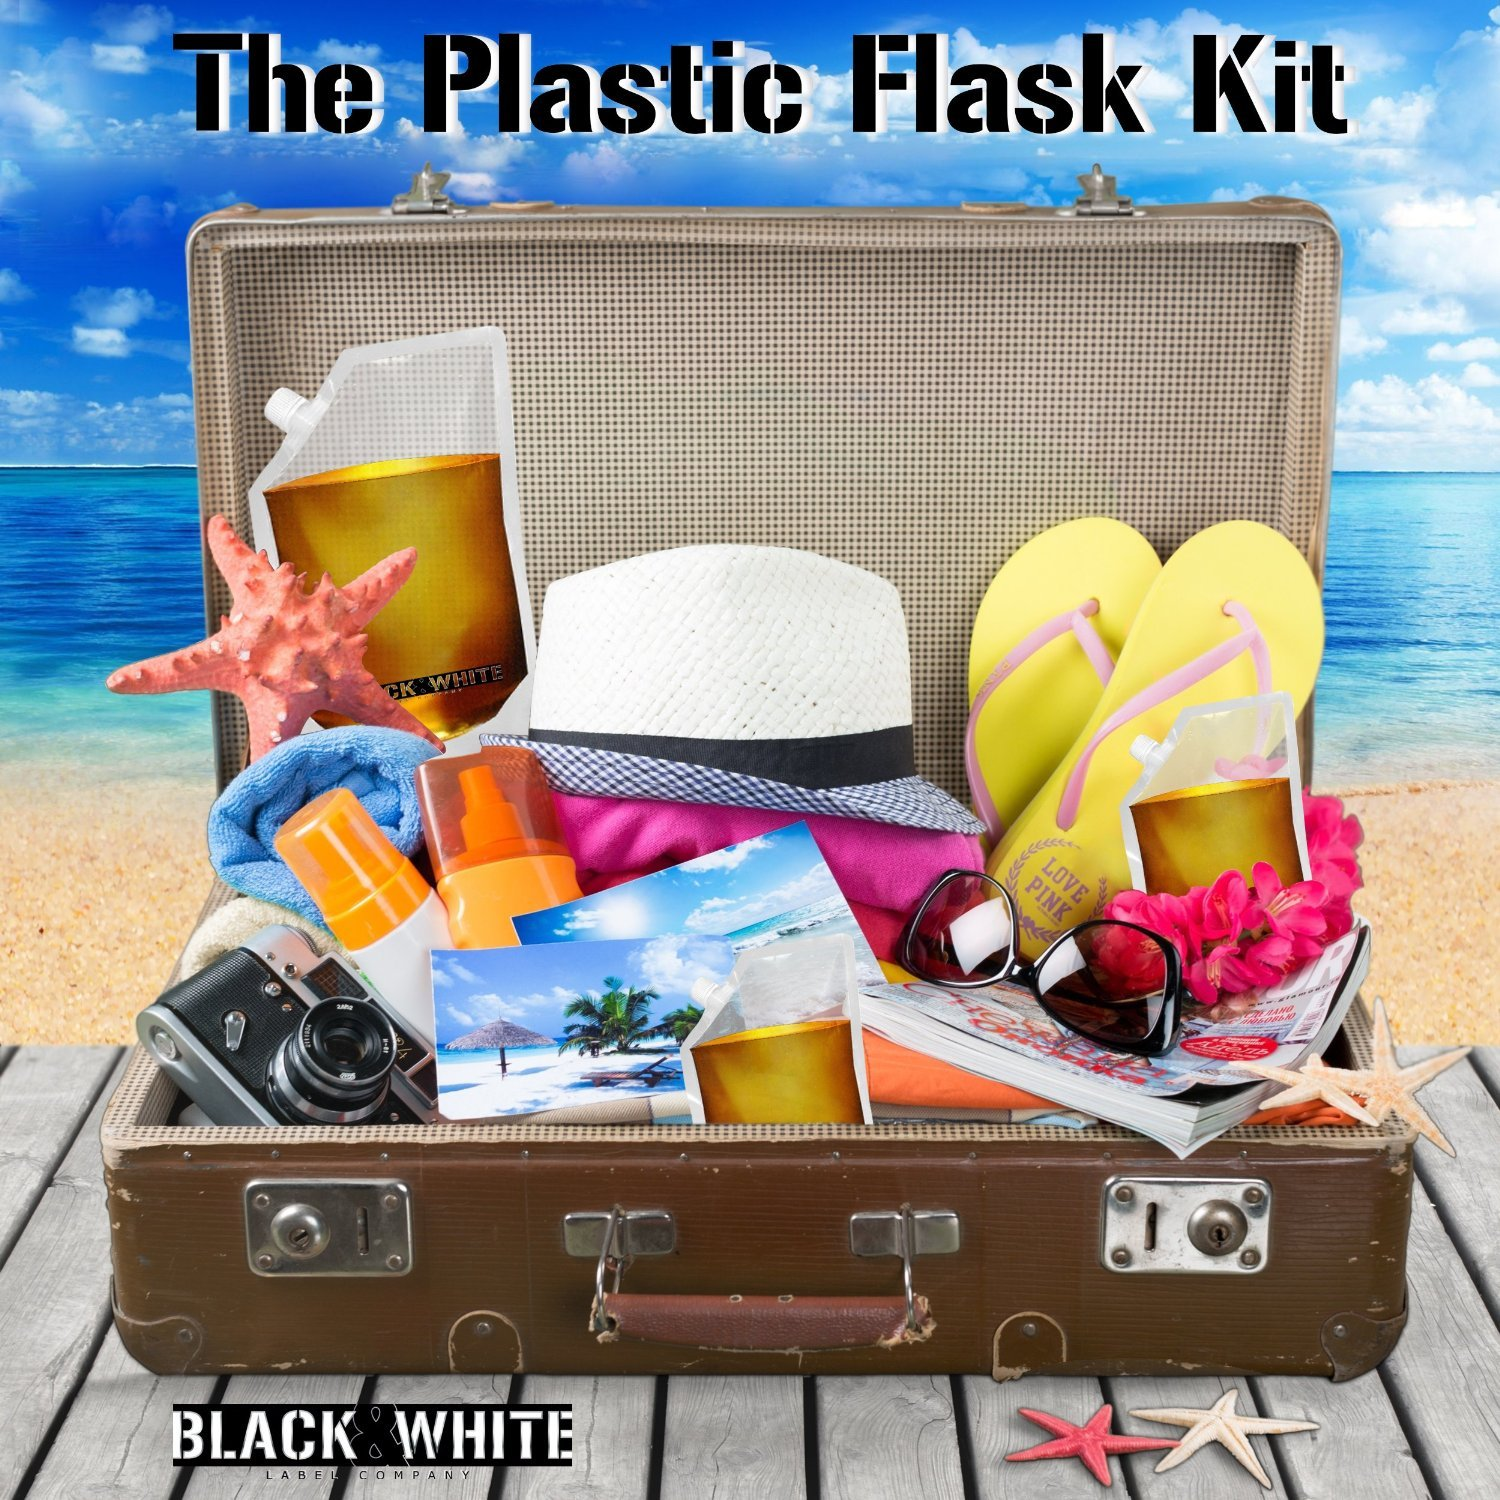 (9) Black & White Label Plastic Flasks Liquor Flask Rum Runner Cruise Kit Sneak Alcohol Drink Wine Pouch Bag Set Concealable Flasks For Booze (3x32oz + 3x16oz + 3x8oz + Wine To Go Flask +Funnel) by Black & White Label Company (Image #5)